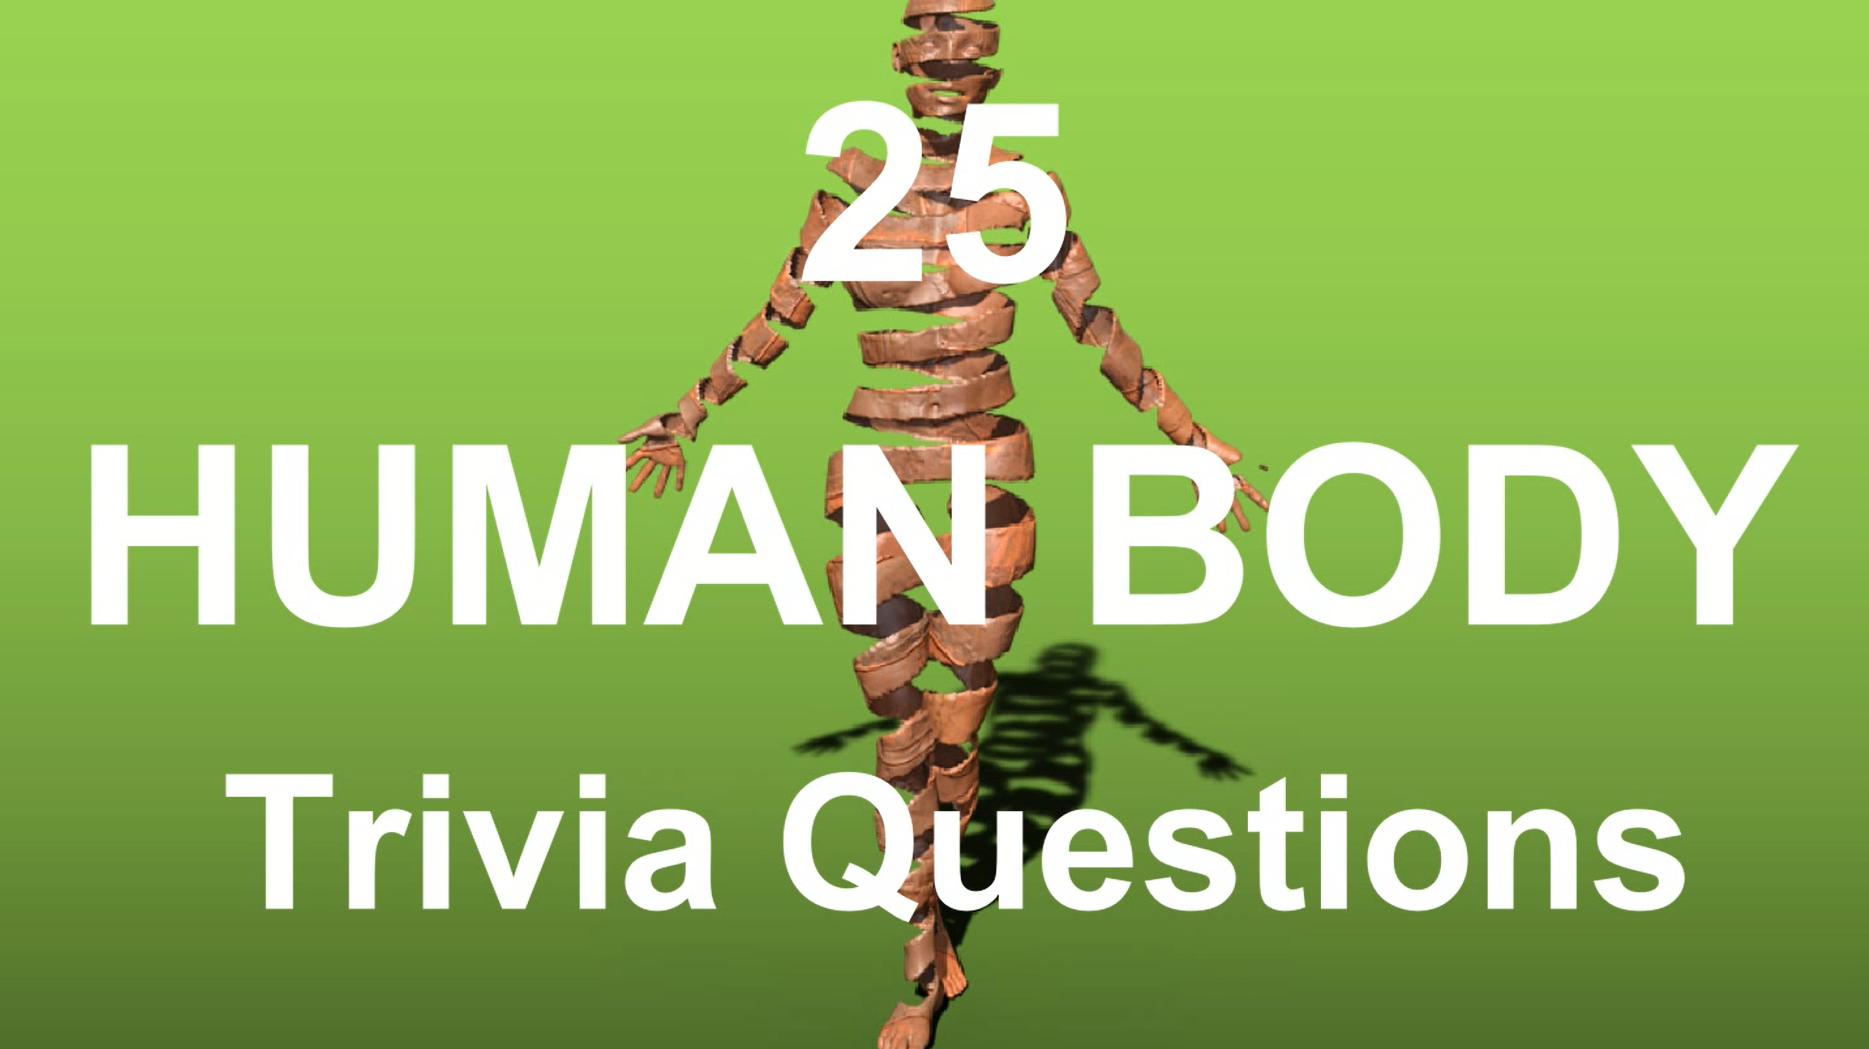 Here are 25 Human Body Trivia questions covering different aspects ...